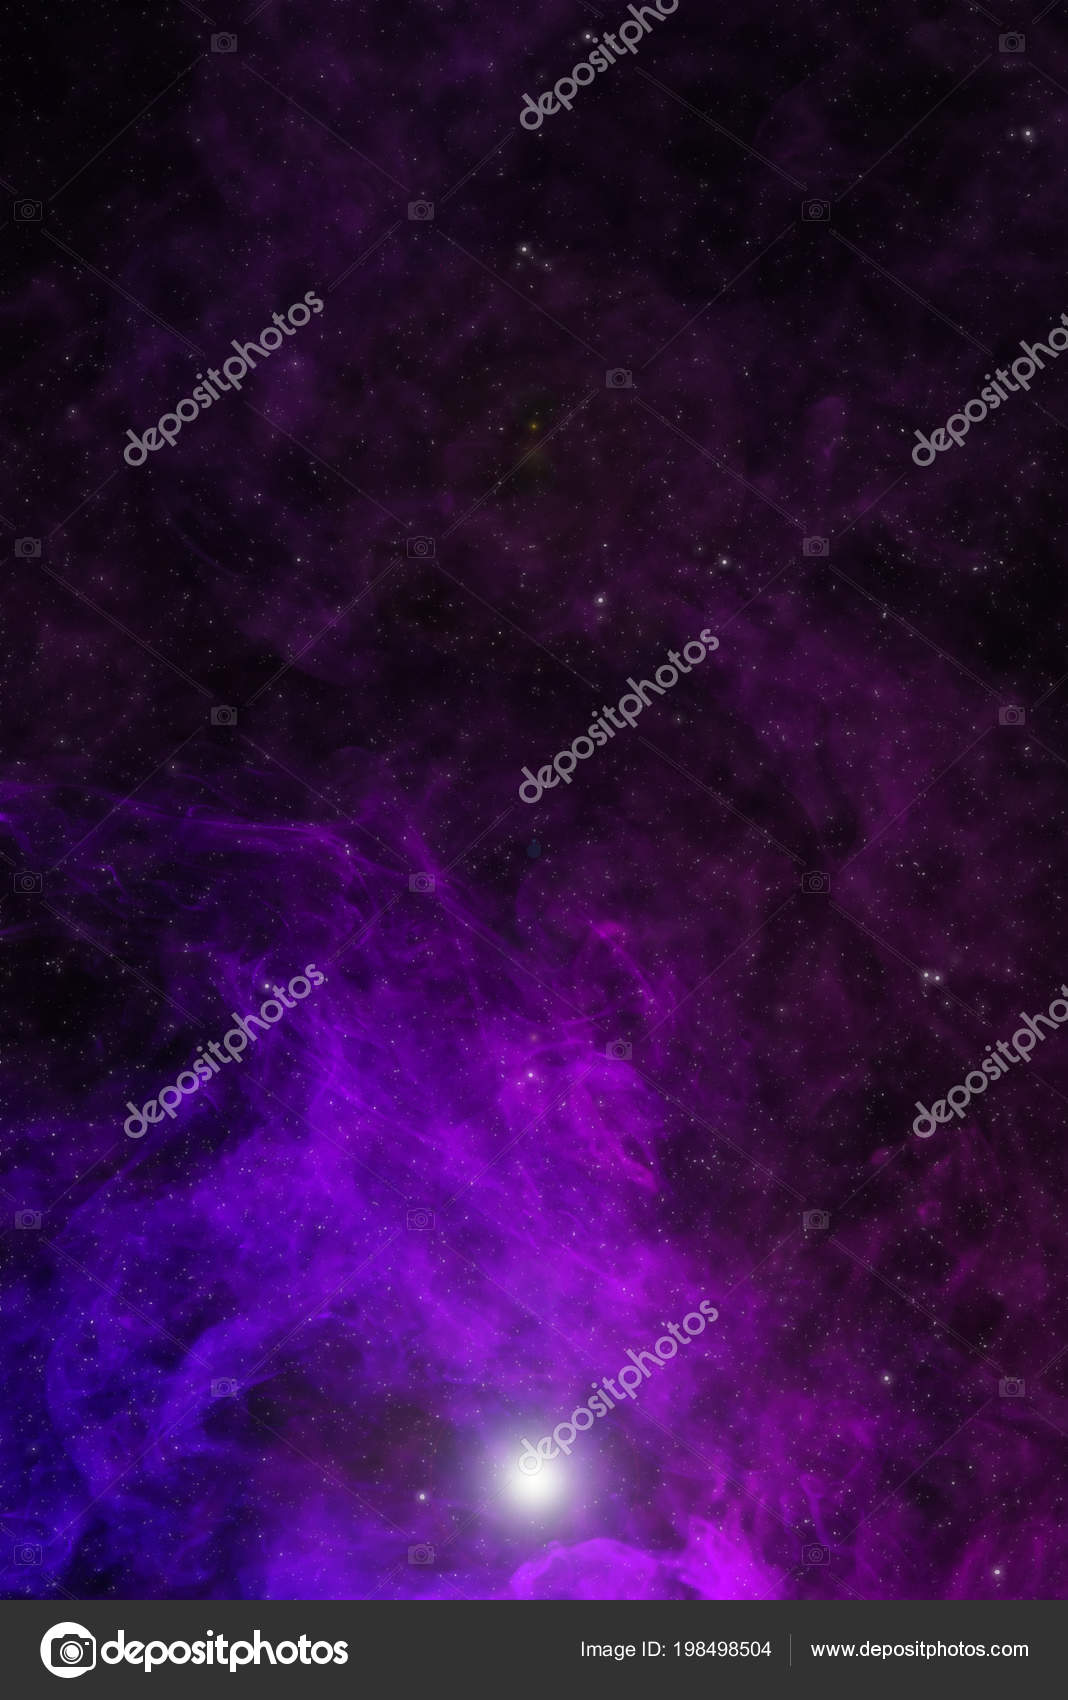 beautiful universe background violet smoke stars glowing light